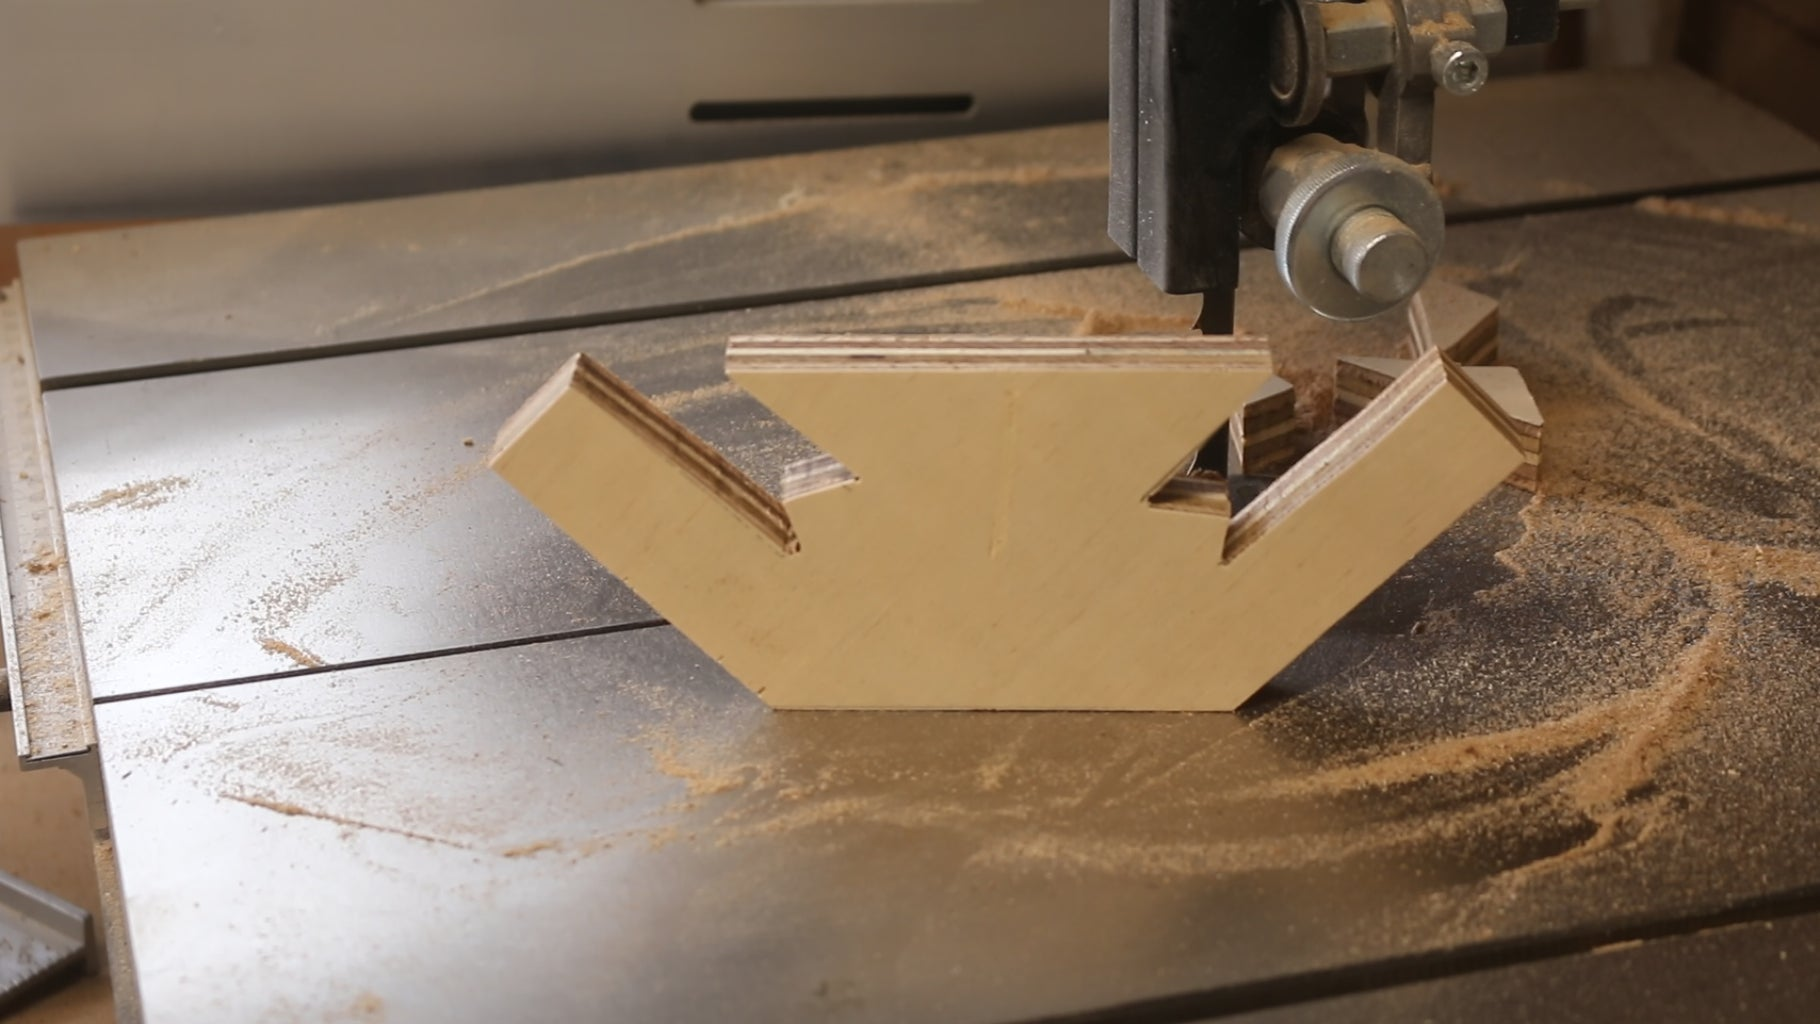 Cut Spaces for Clamps